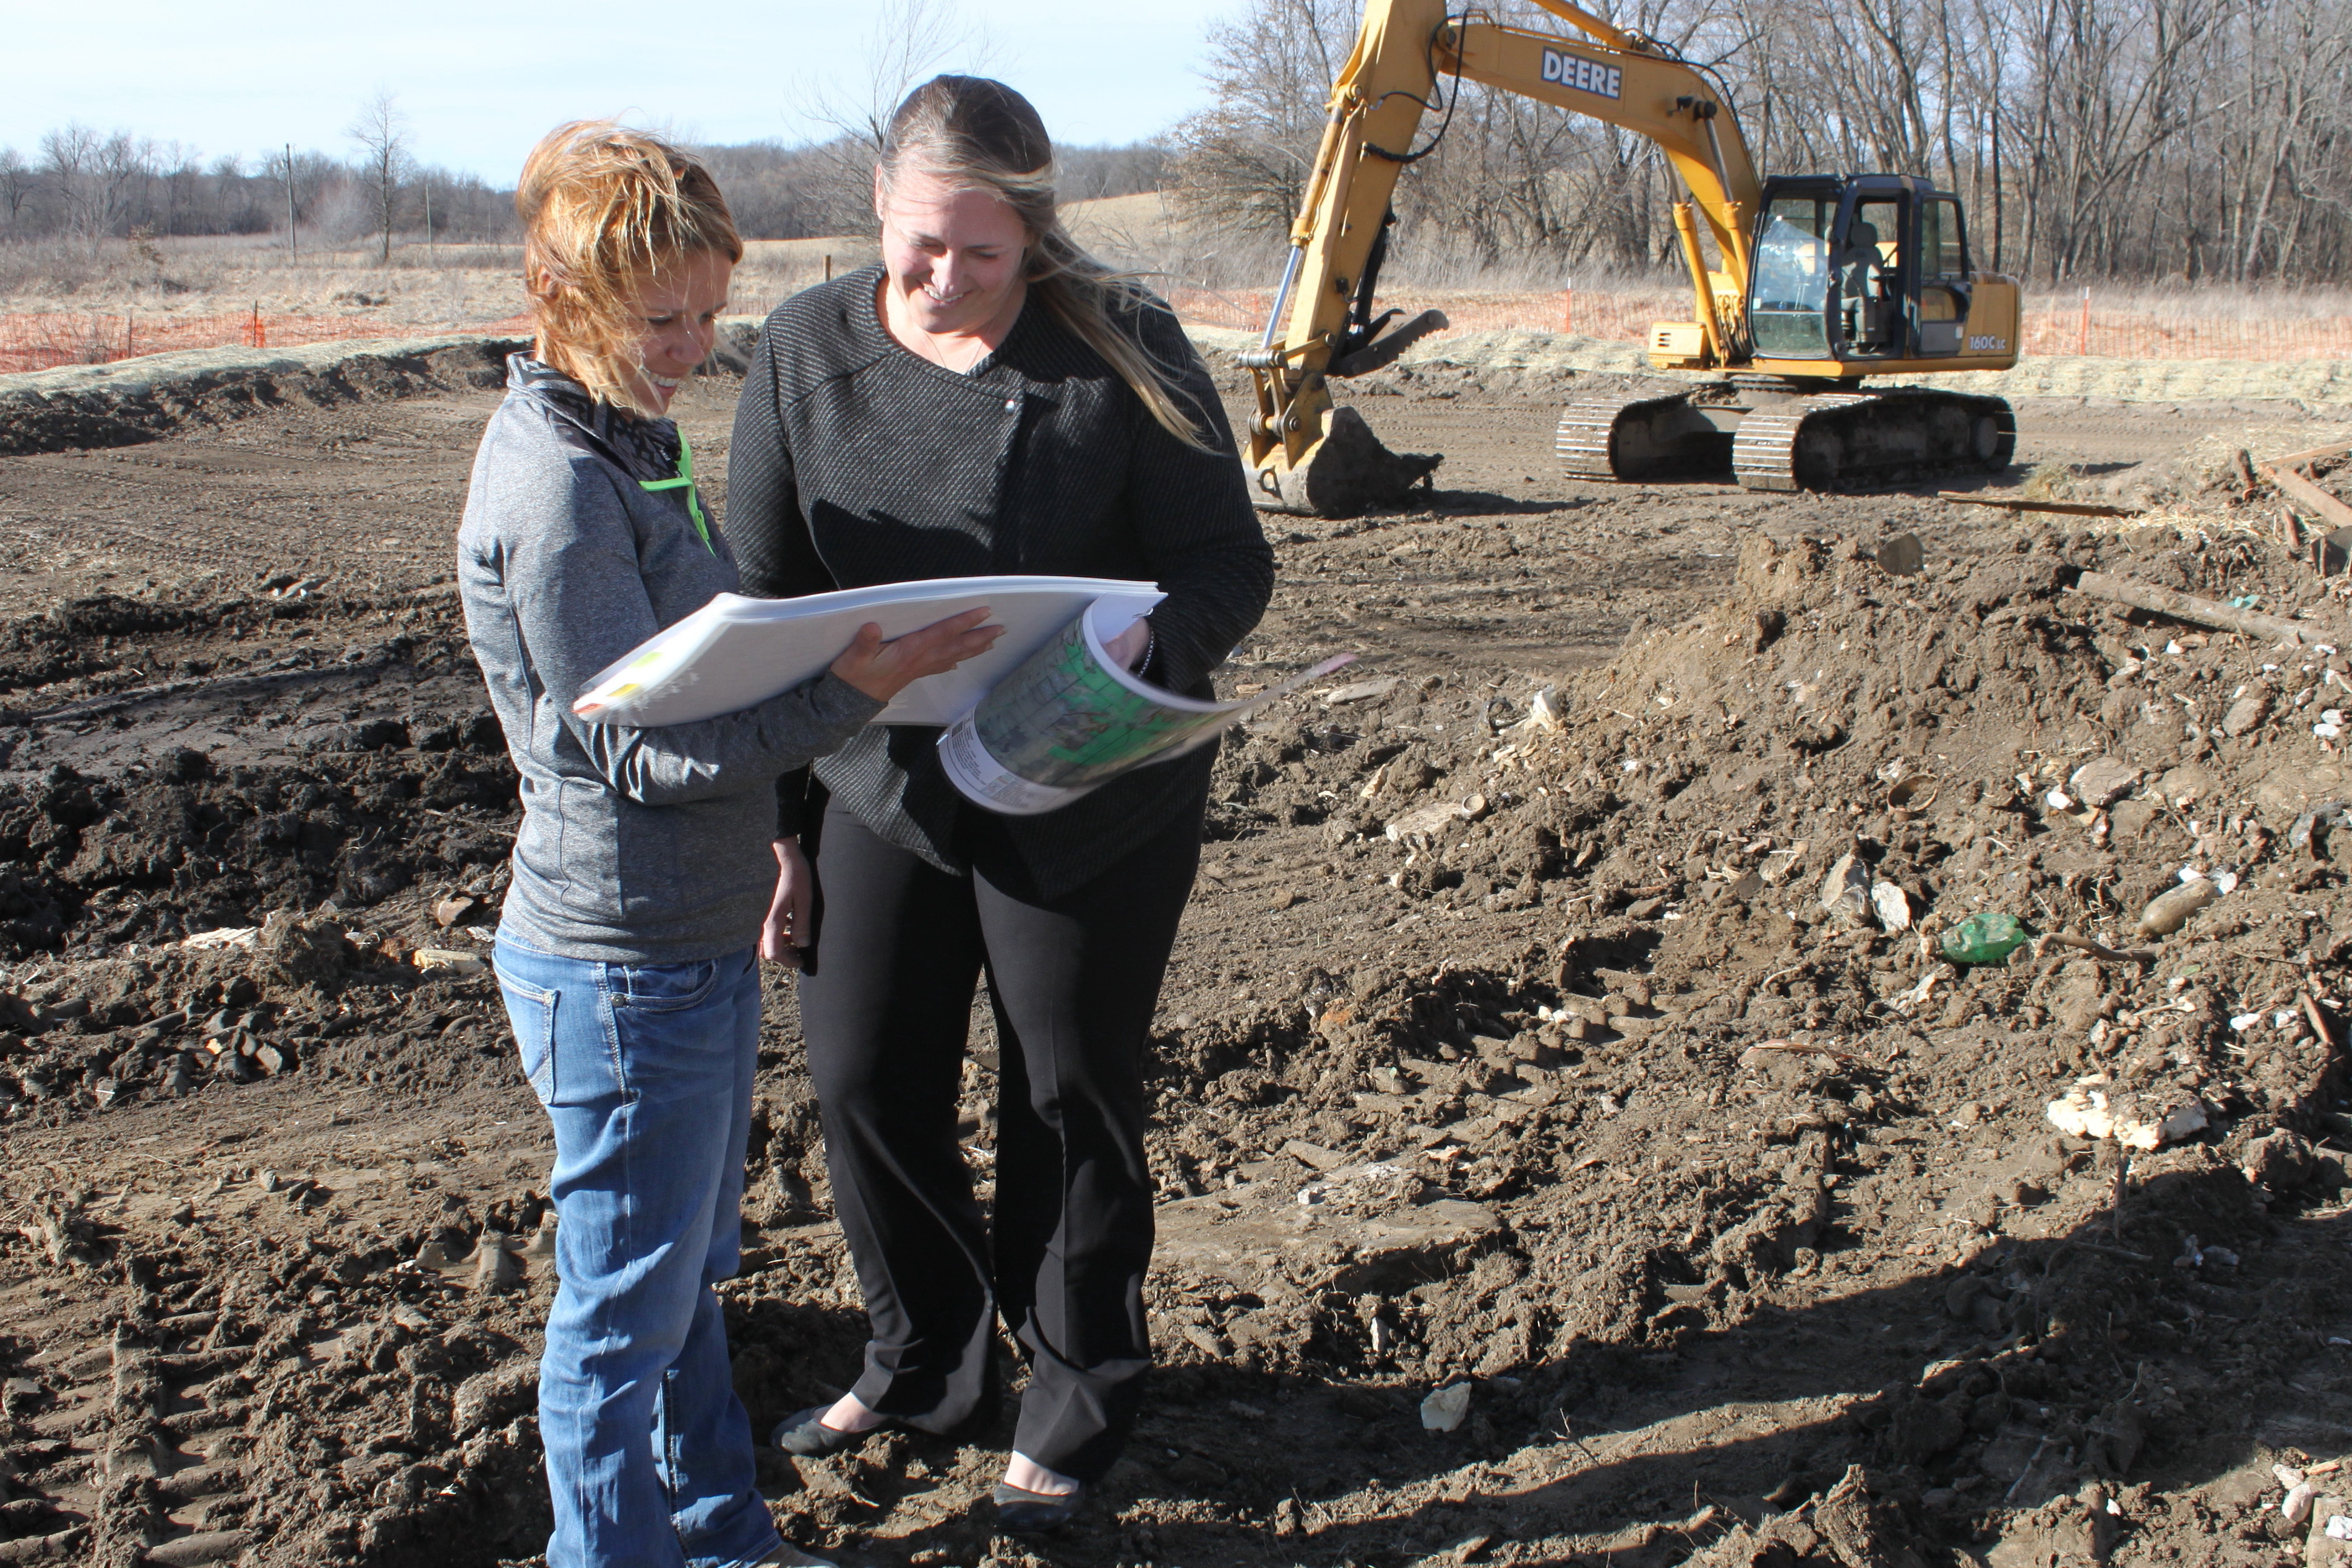 Rodriguez, left, reviews project plans with Weitkemper at one of the cleanup sites of the future 2,300-acre East Locust Creek Reservoir in Sullivan County near Milan, Mo.